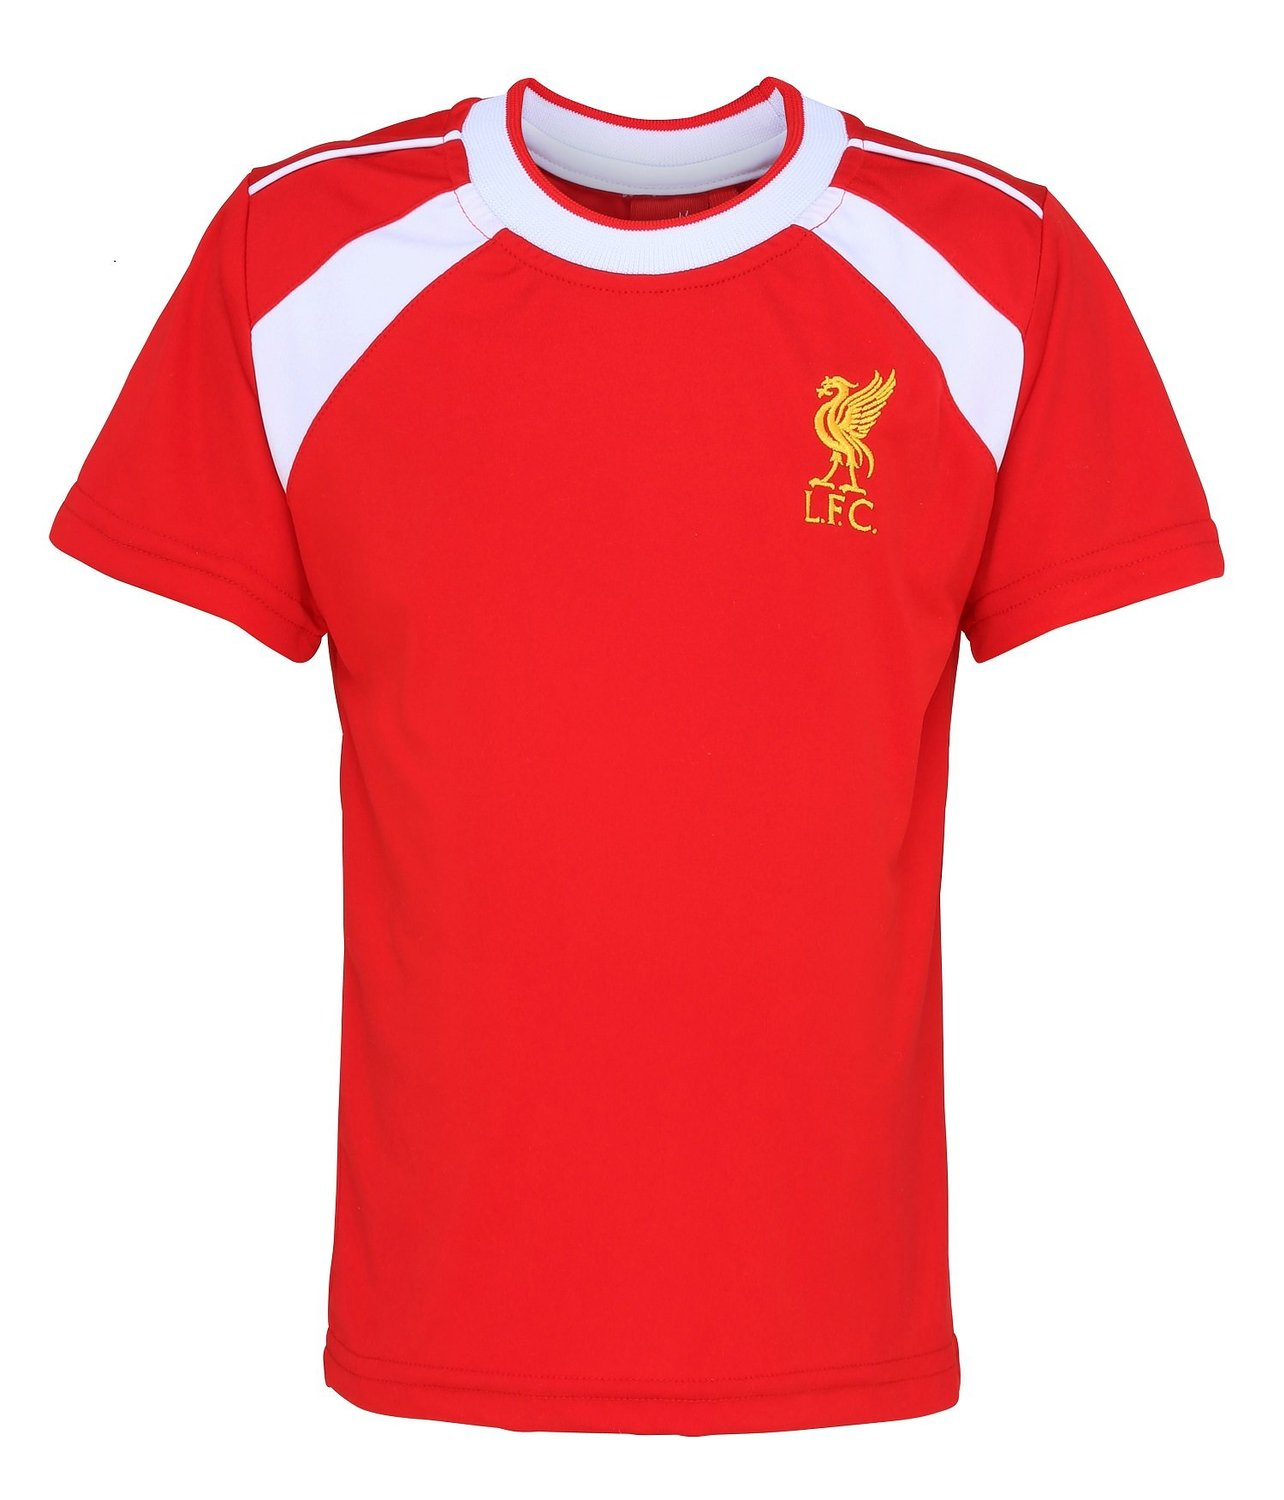 39c94030bfd Get Quotations · Official Football Merch Kids Liverpool Shirt - Ages 2-13